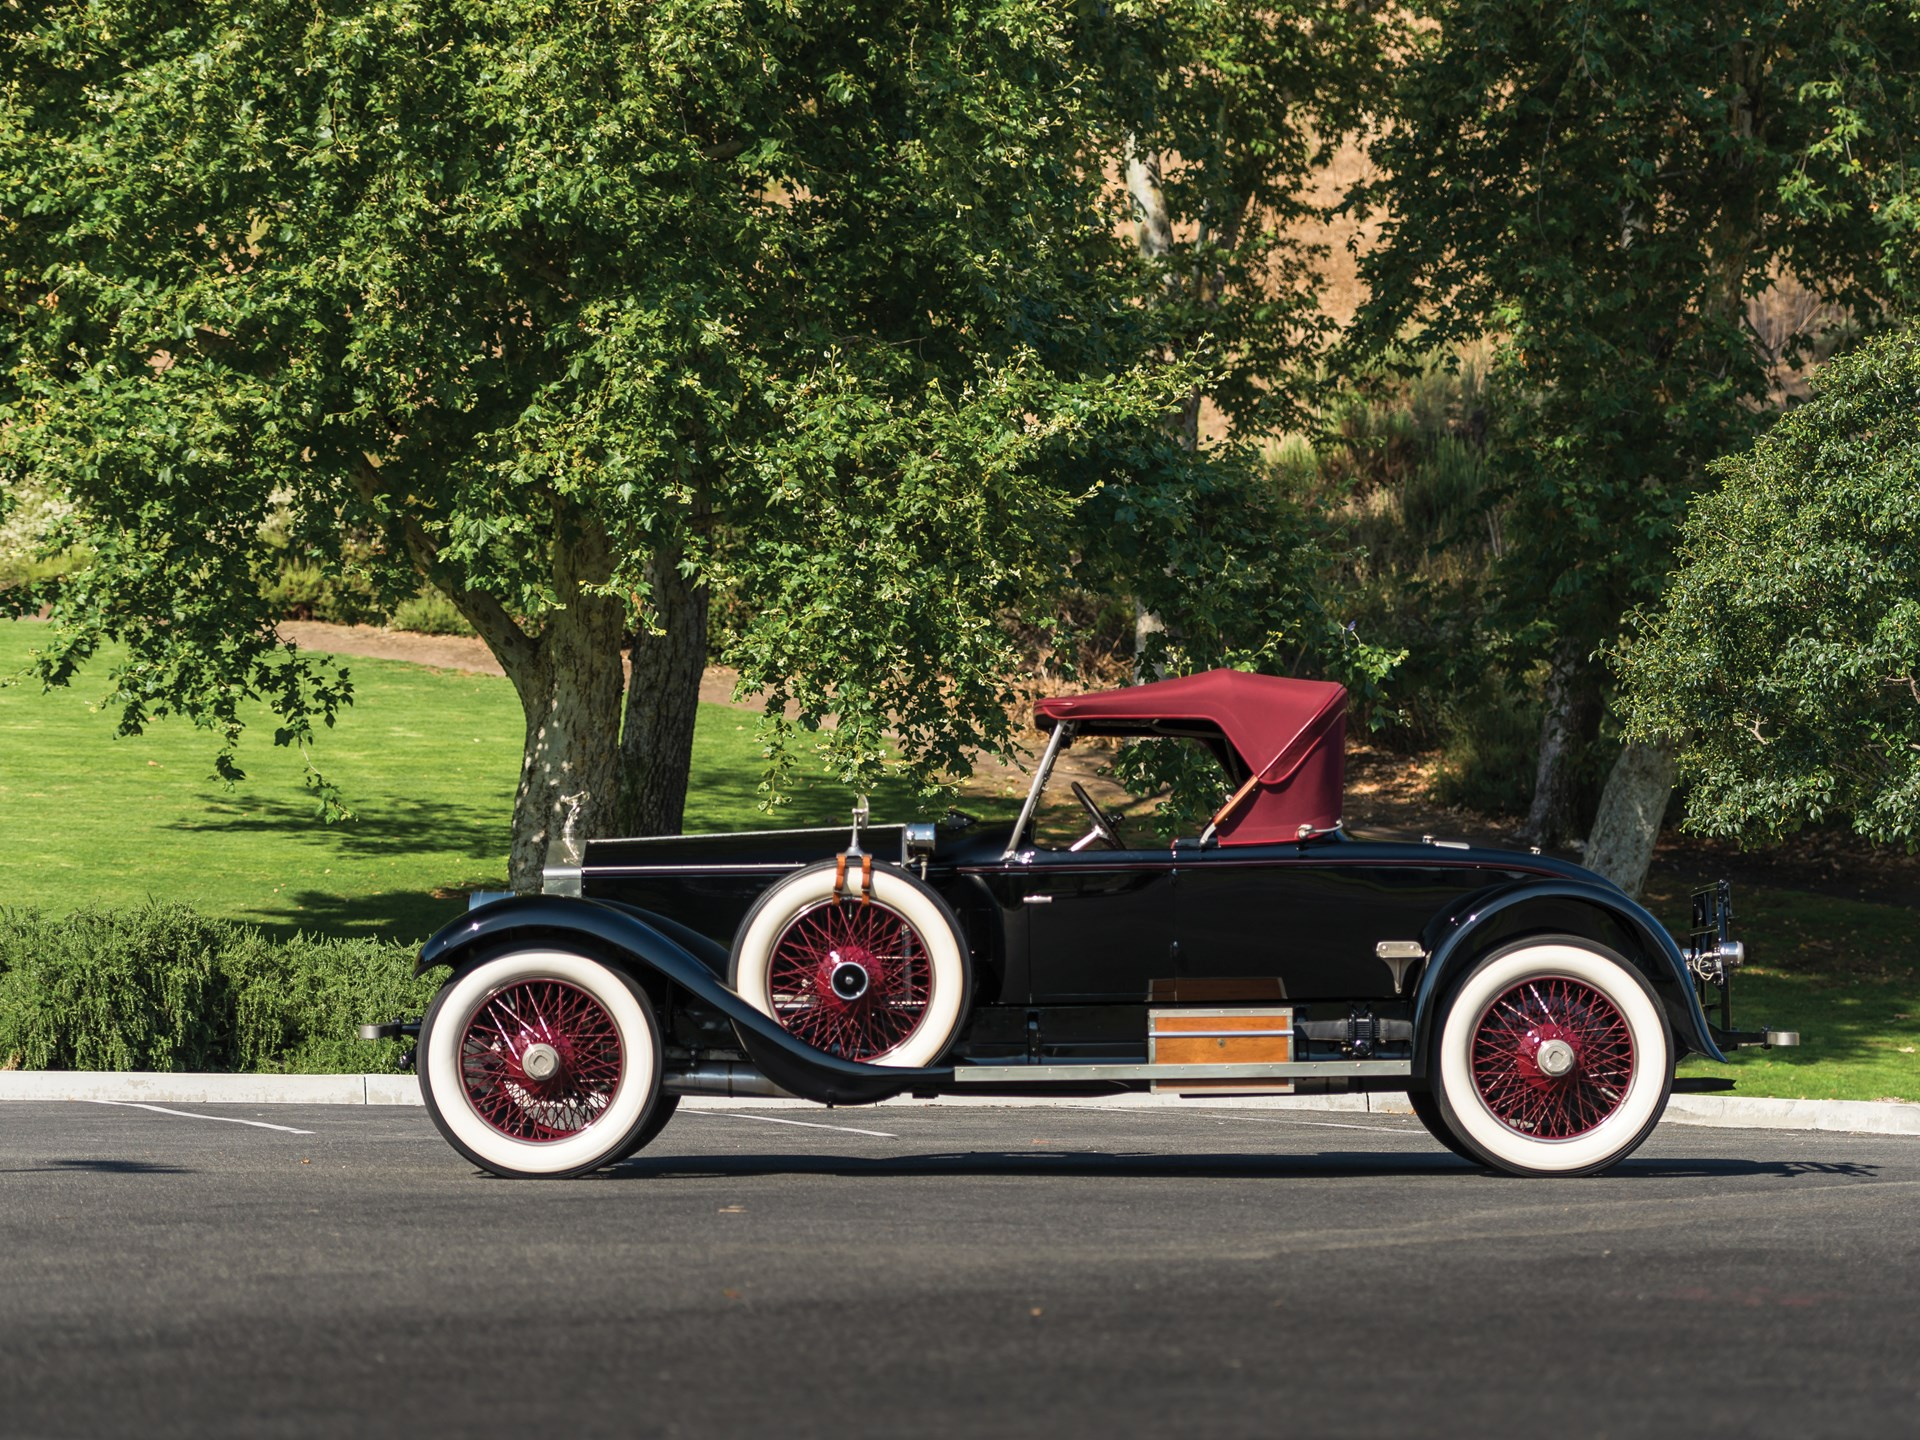 1923 Rolls-Royce Silver Ghost Piccadilly Roadster by Merrimac